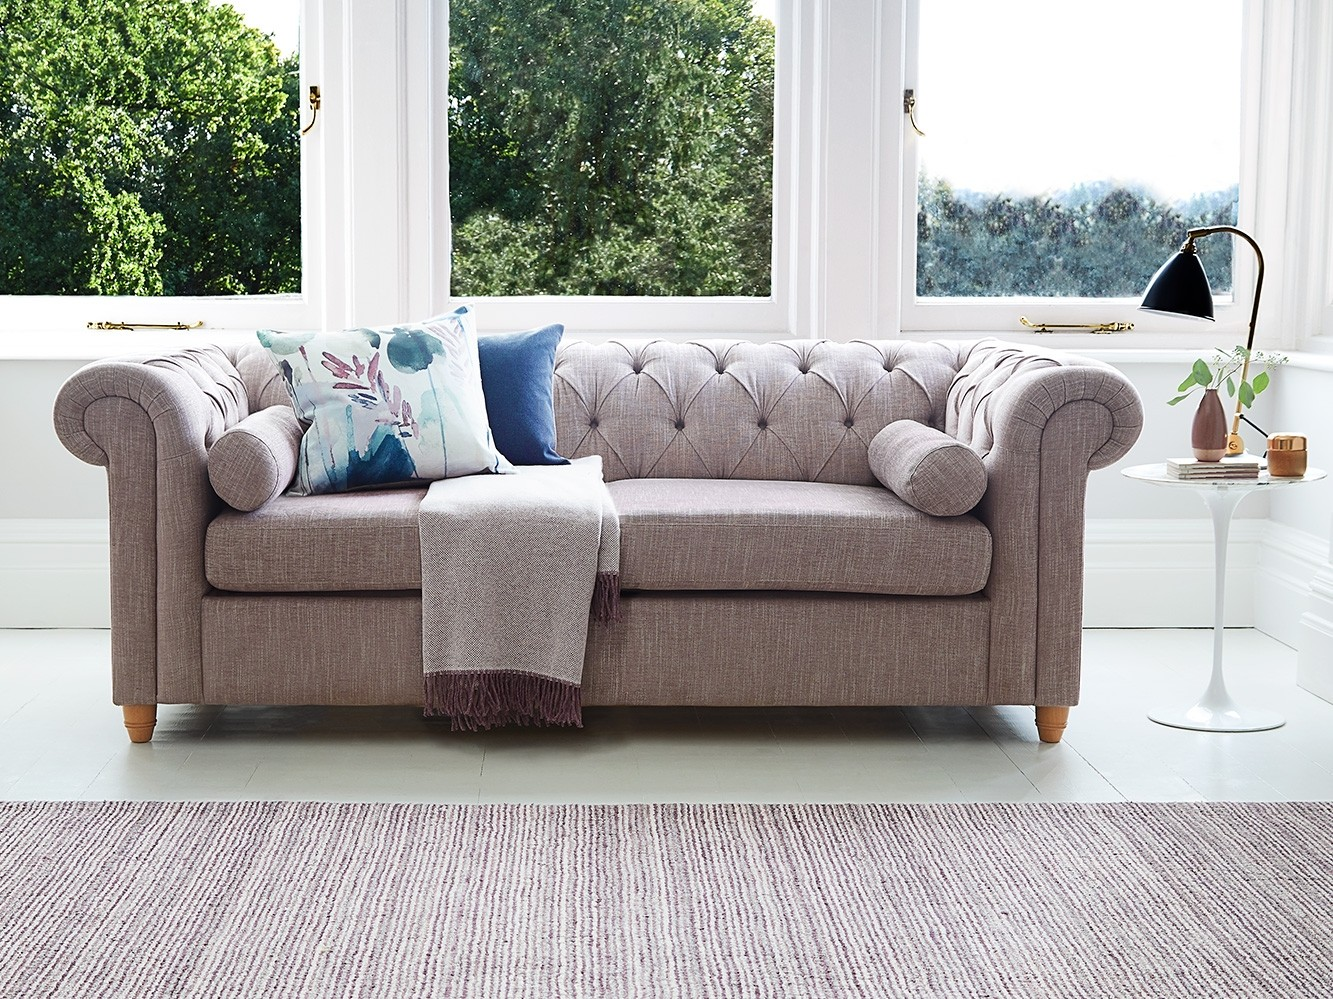 Button-back Bulford sofa or sofa bed